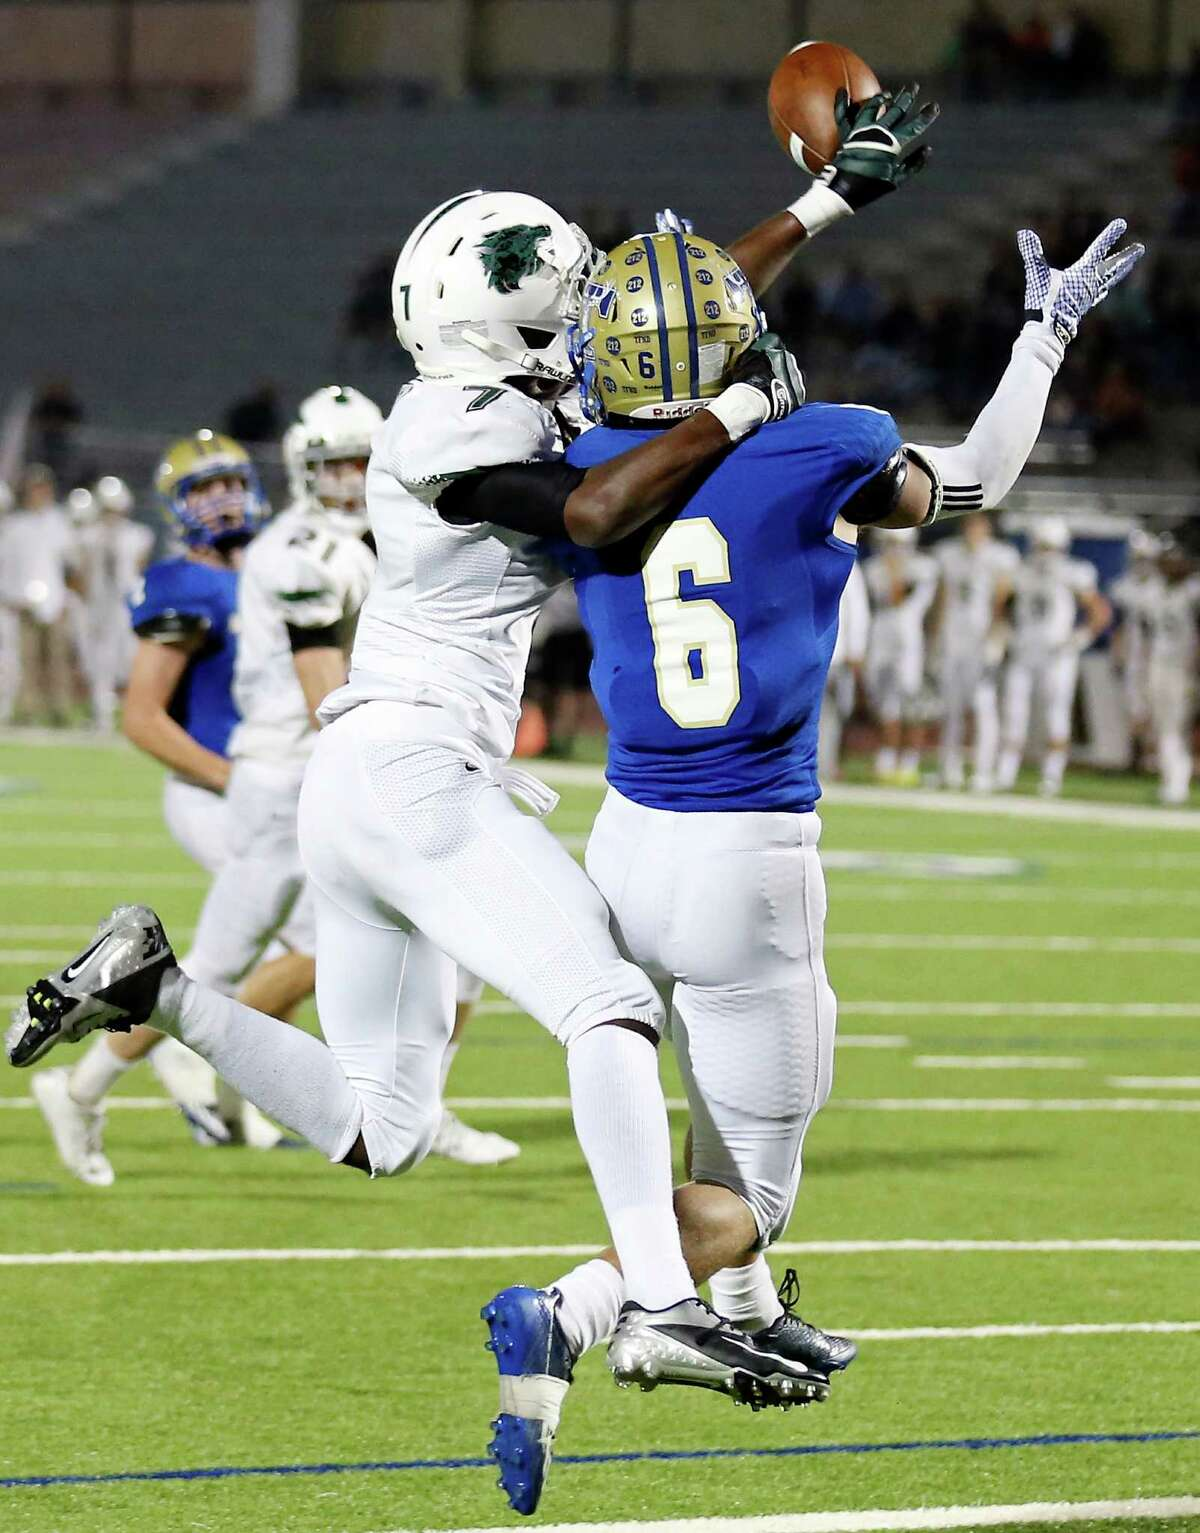 Cedar Park's Elisha Guidry blocks a pass intended for Kerrville Tivy's Carson McCoy during first half action of their Class 5A Division II state quarterfinal playoff game Friday Dec. 5, 2014 at Alamo Stadium.